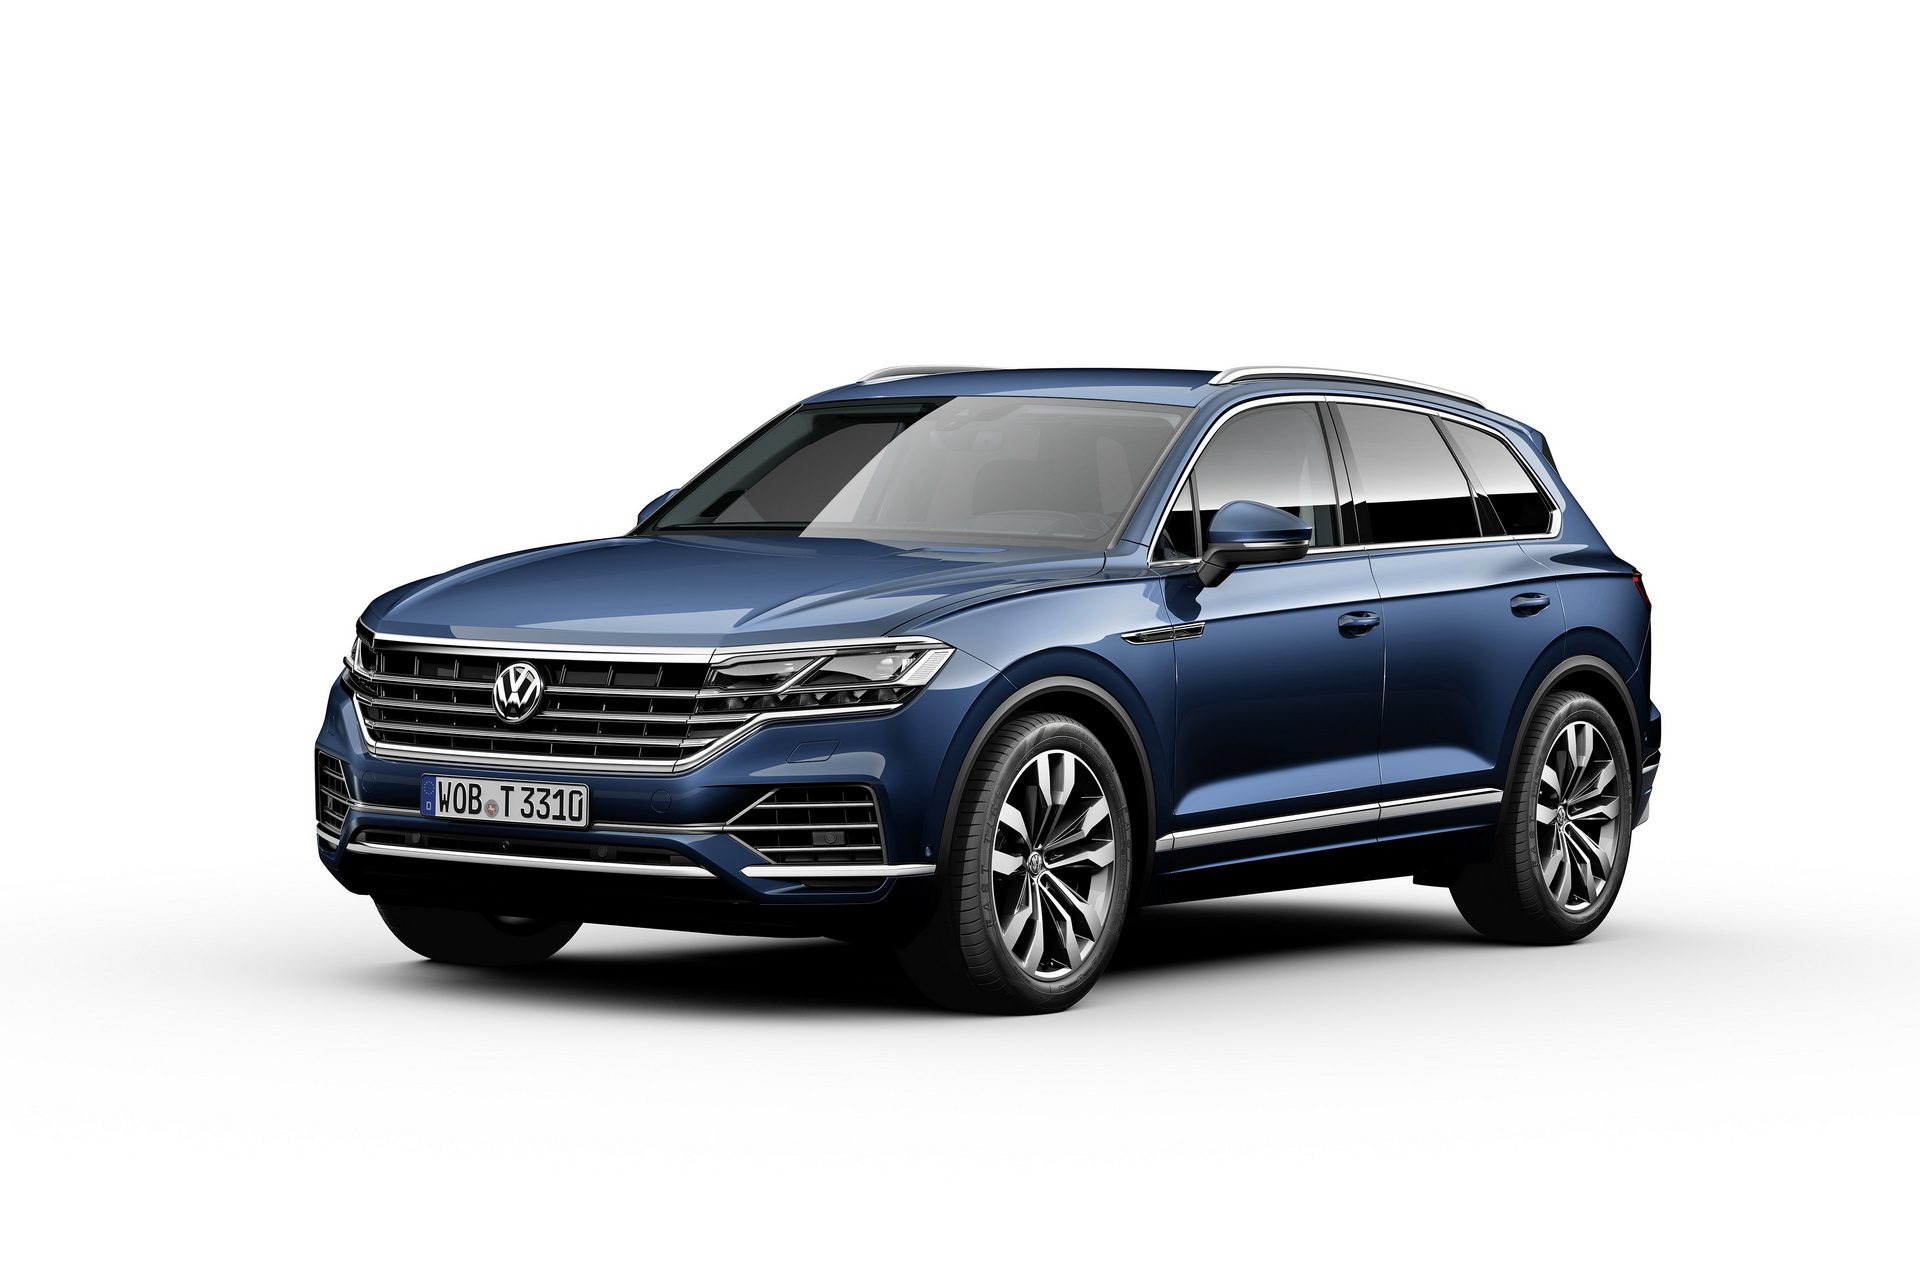 volkswagen touareg iii 2018 topic officiel page 2 touareg volkswagen forum marques. Black Bedroom Furniture Sets. Home Design Ideas